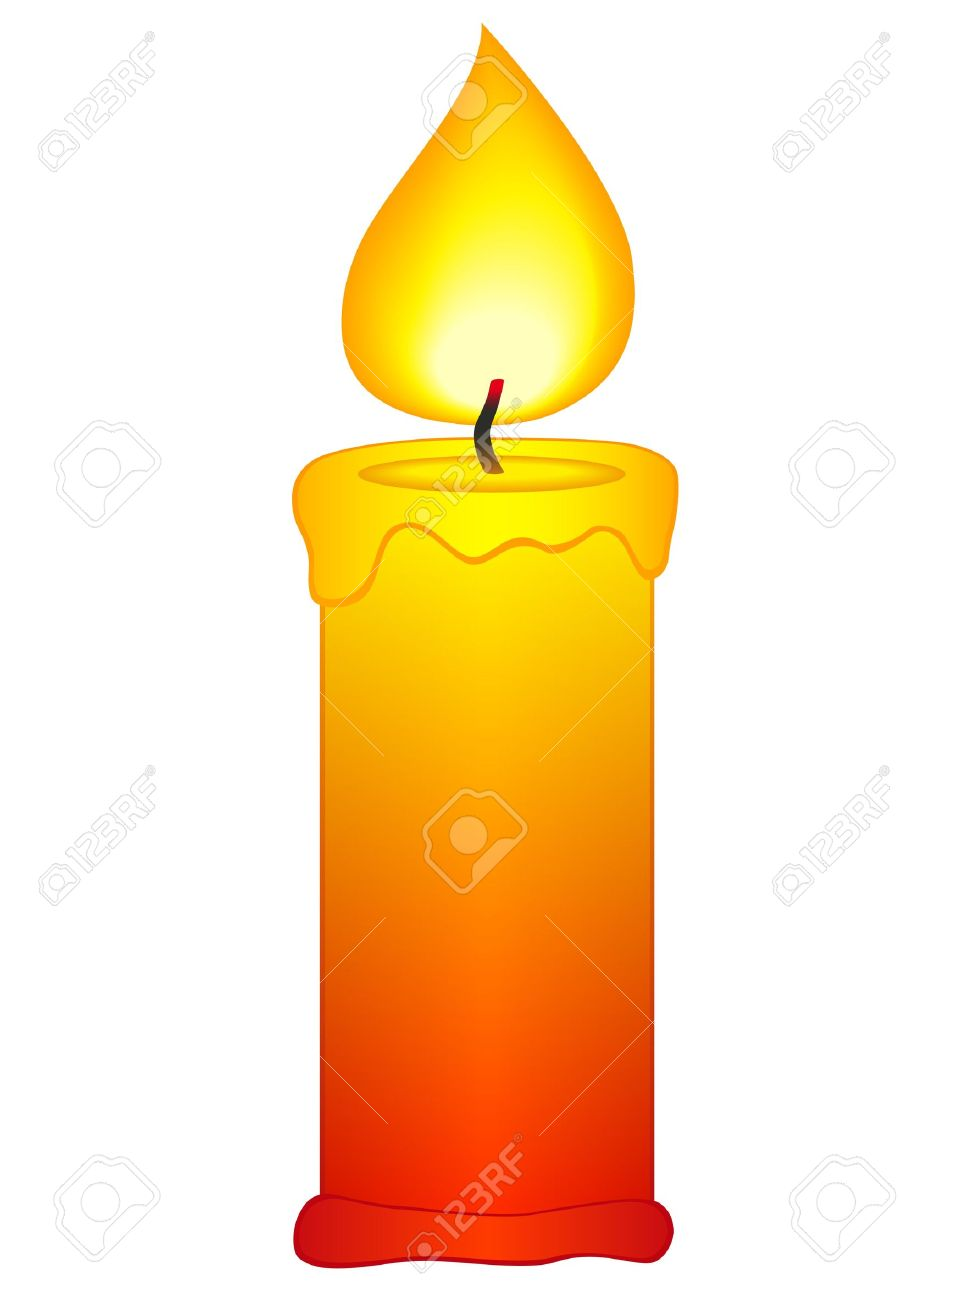 Candle clipart #20, Download drawings